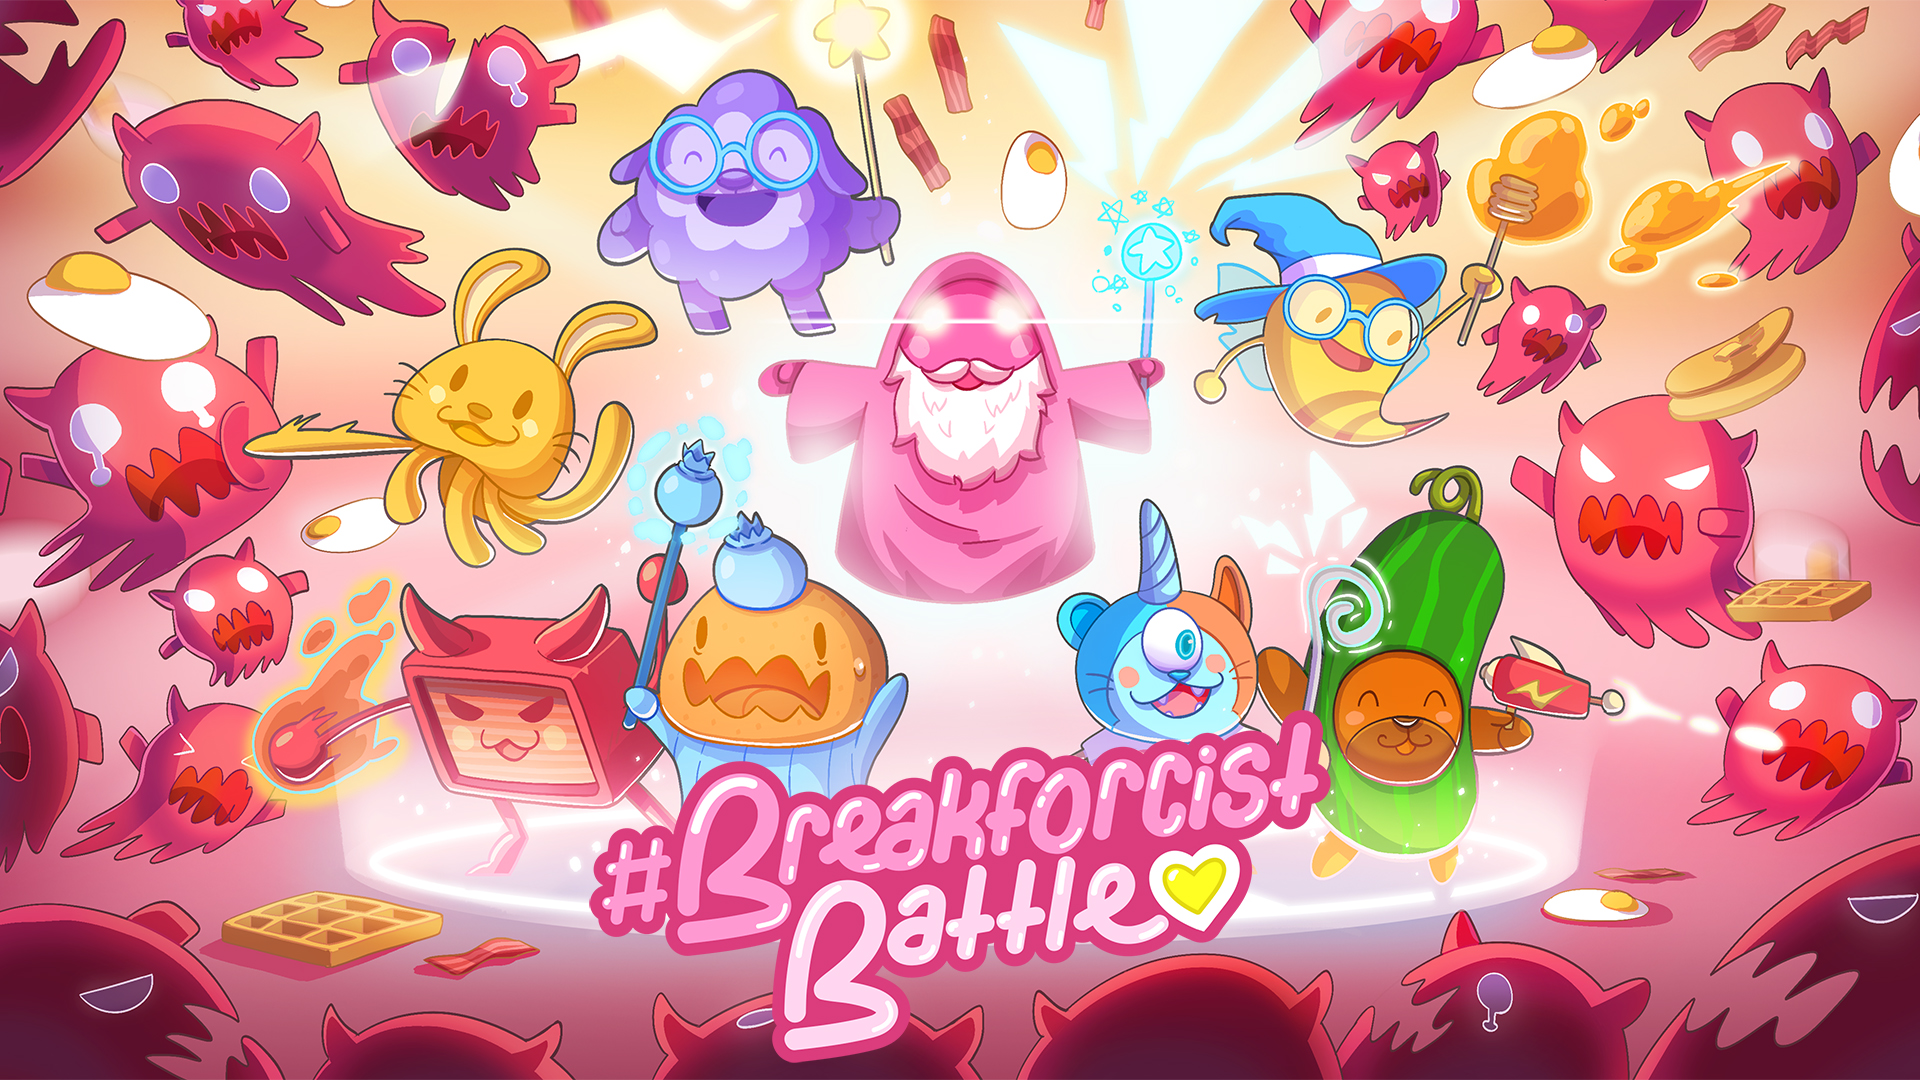 #Breakforcist Battle statistics player count facts